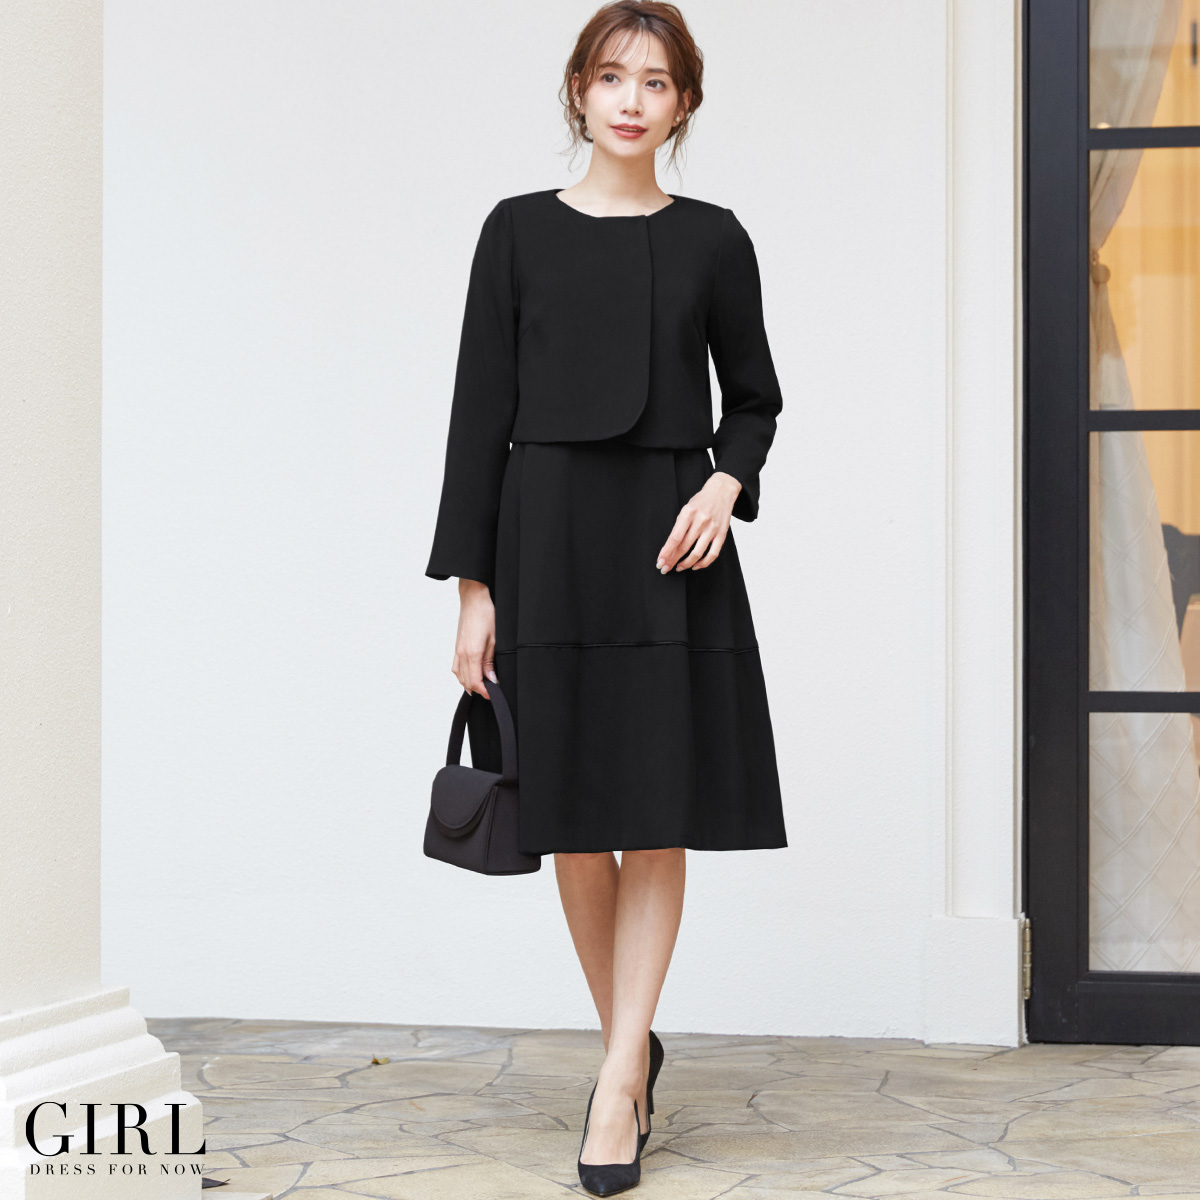 a0aefa99a4c It is fall and winter in dress wedding ceremony dress invite party dress  suit Lady s formal suit suit set big size black formal graduation ceremony  entrance ...